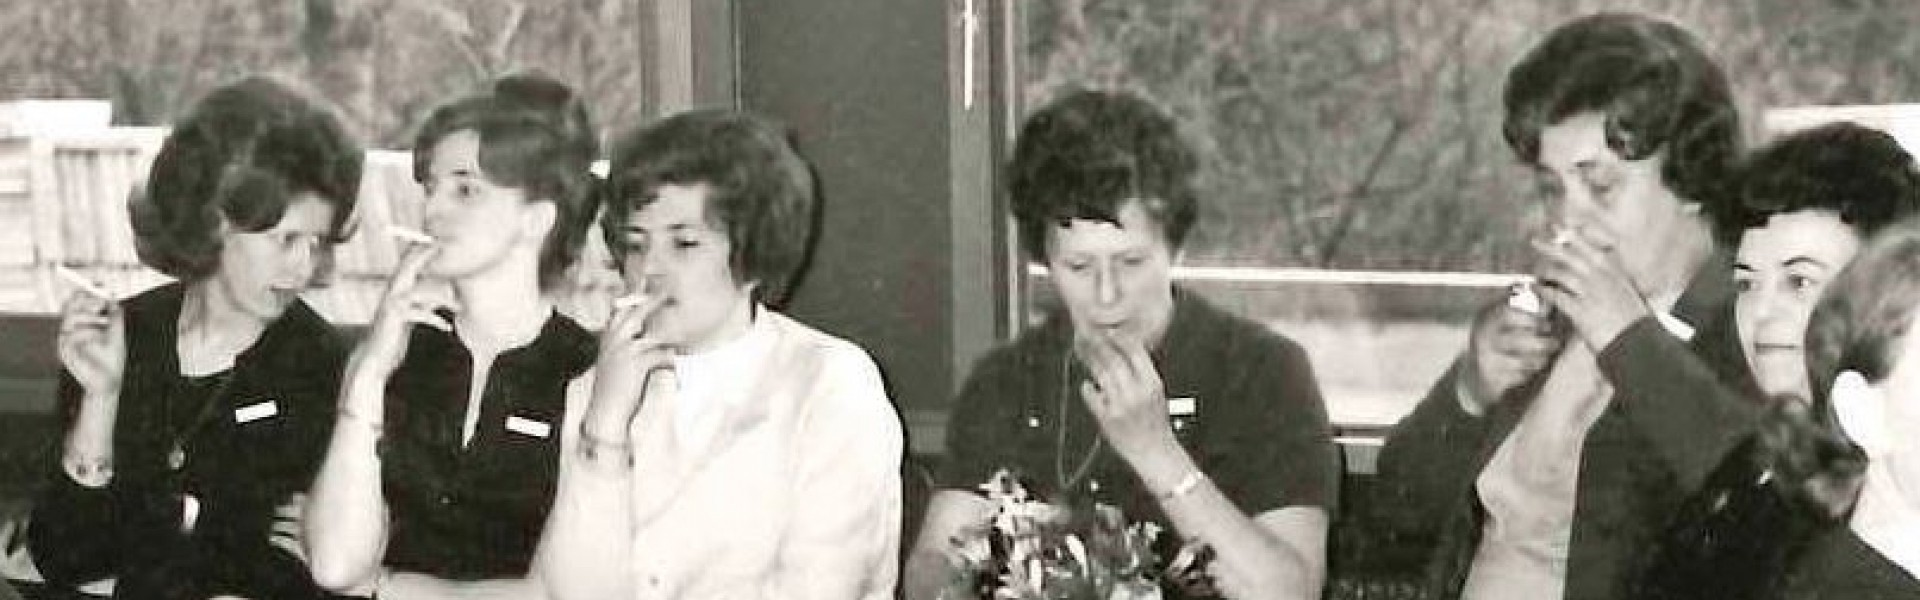 Women at NLO in 1969